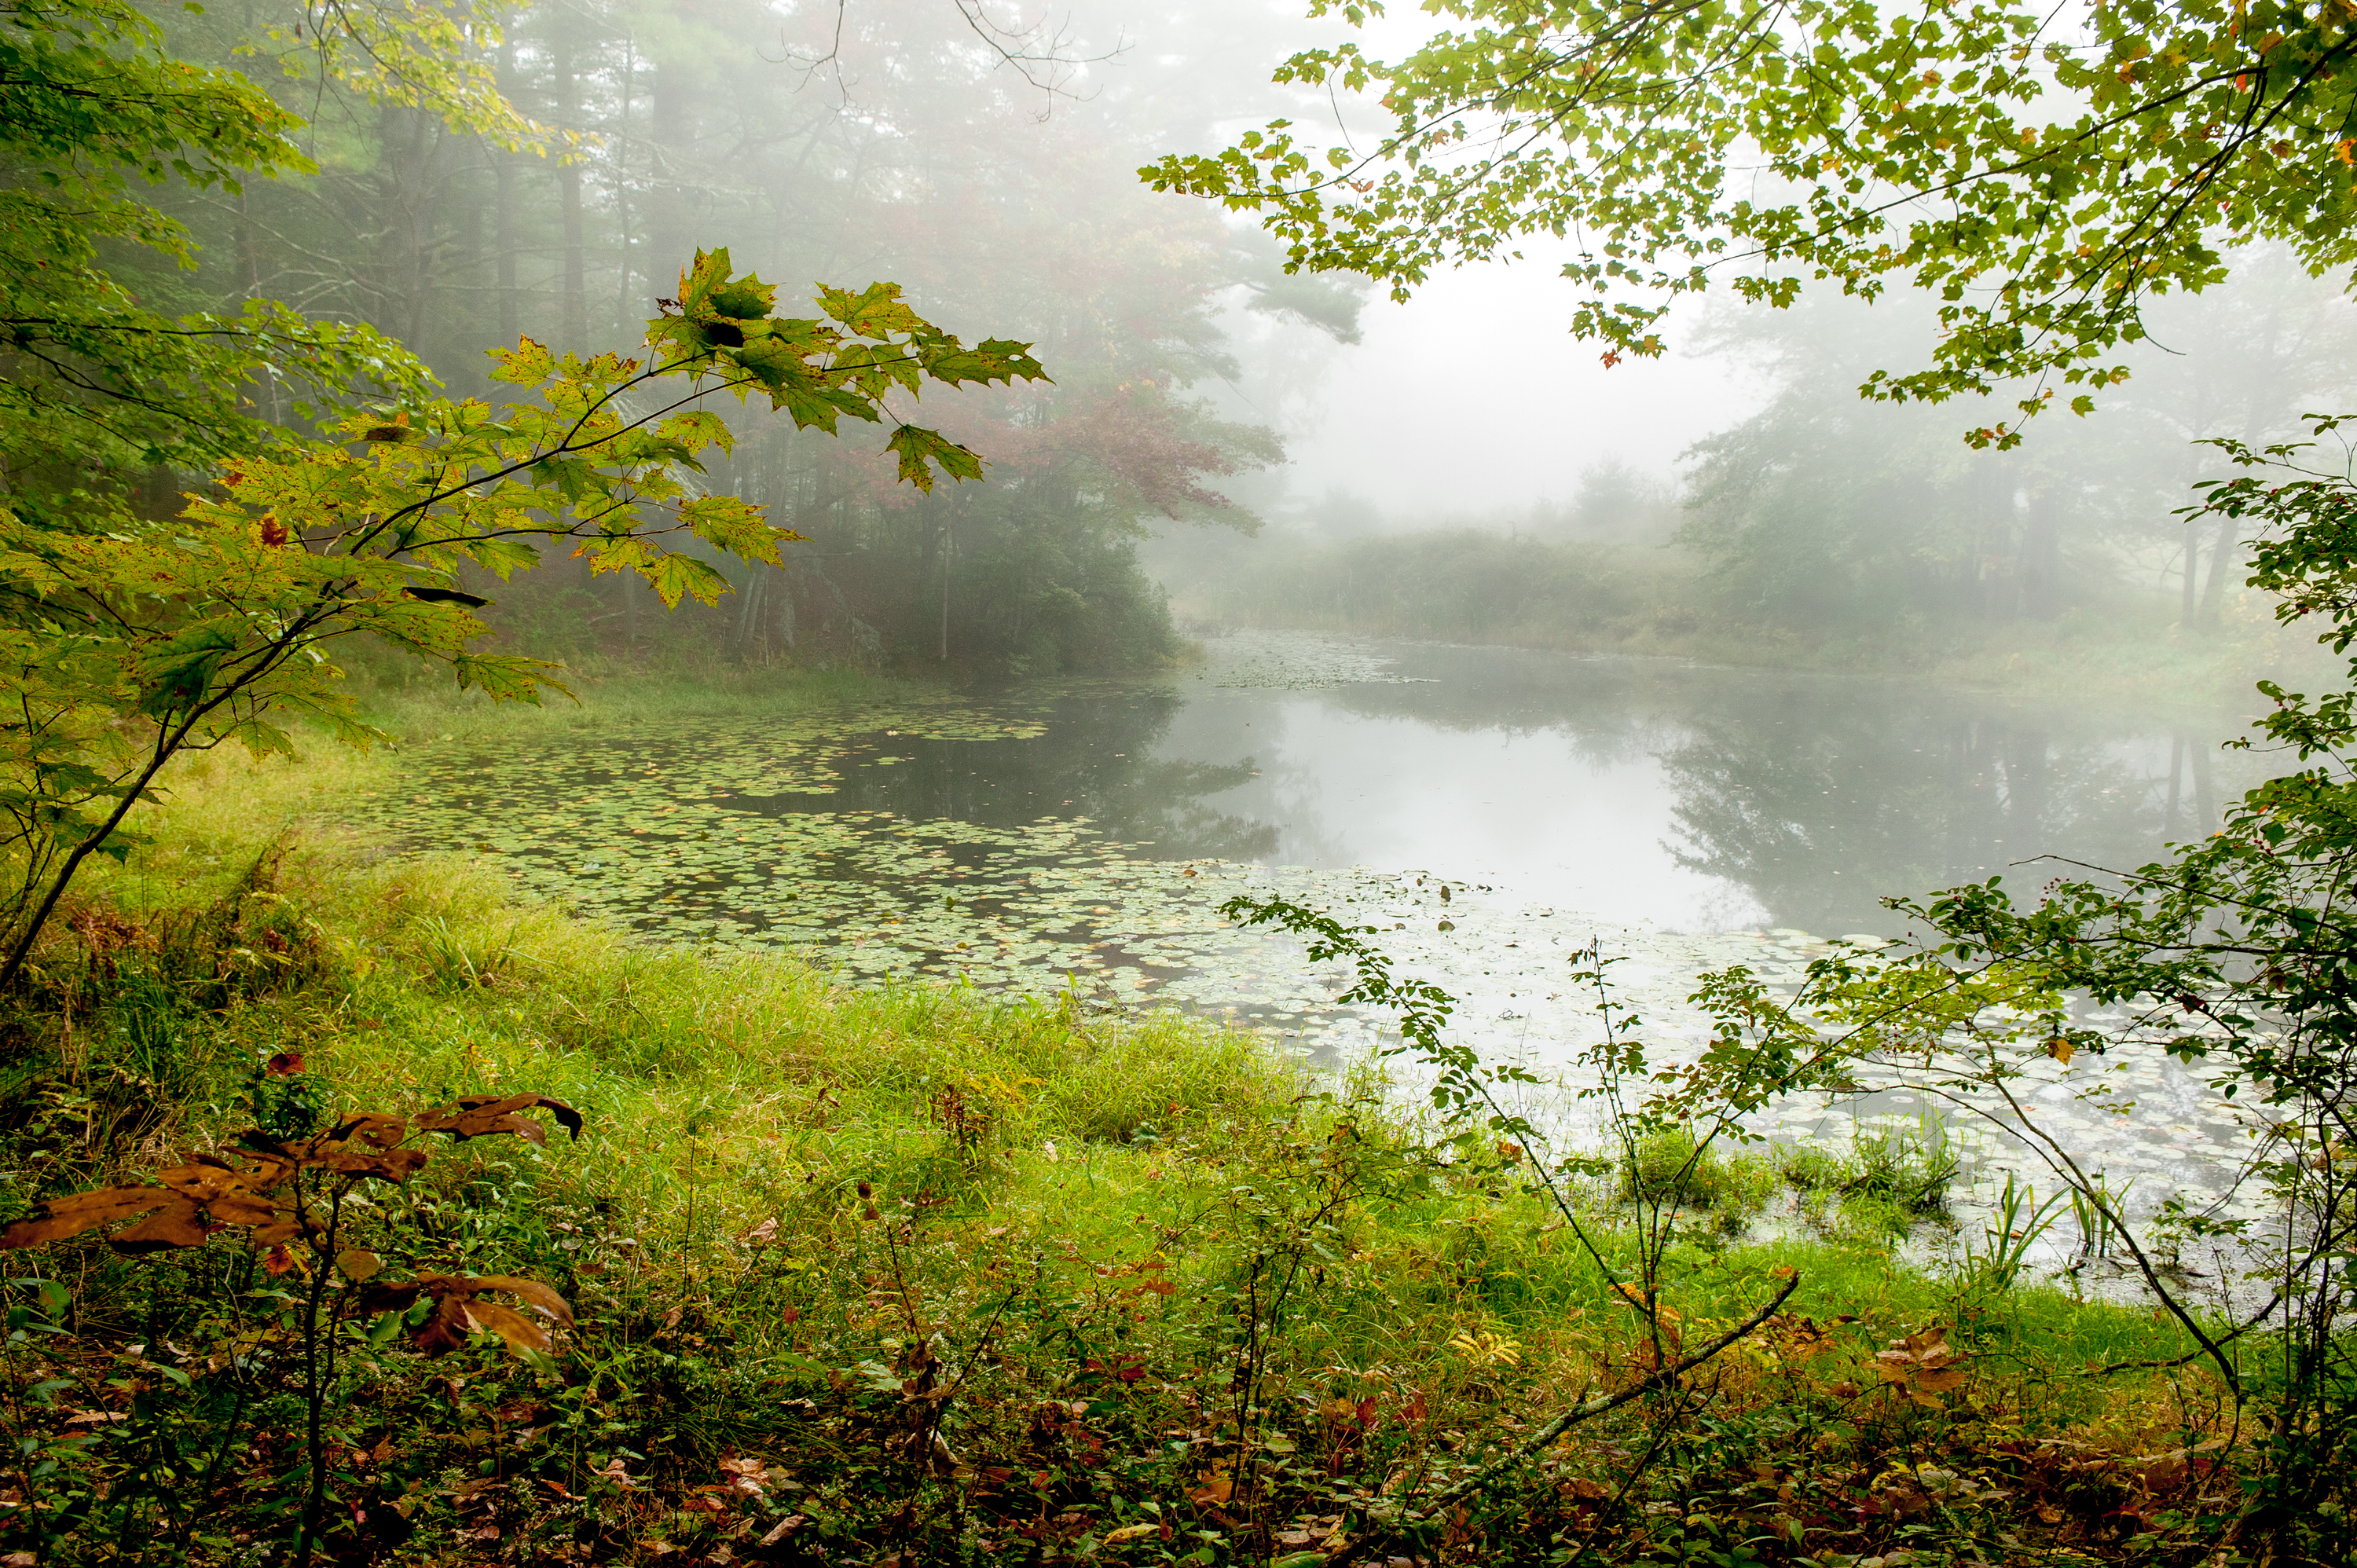 Foggy morning by a pond with green trees and grass framing the shot.